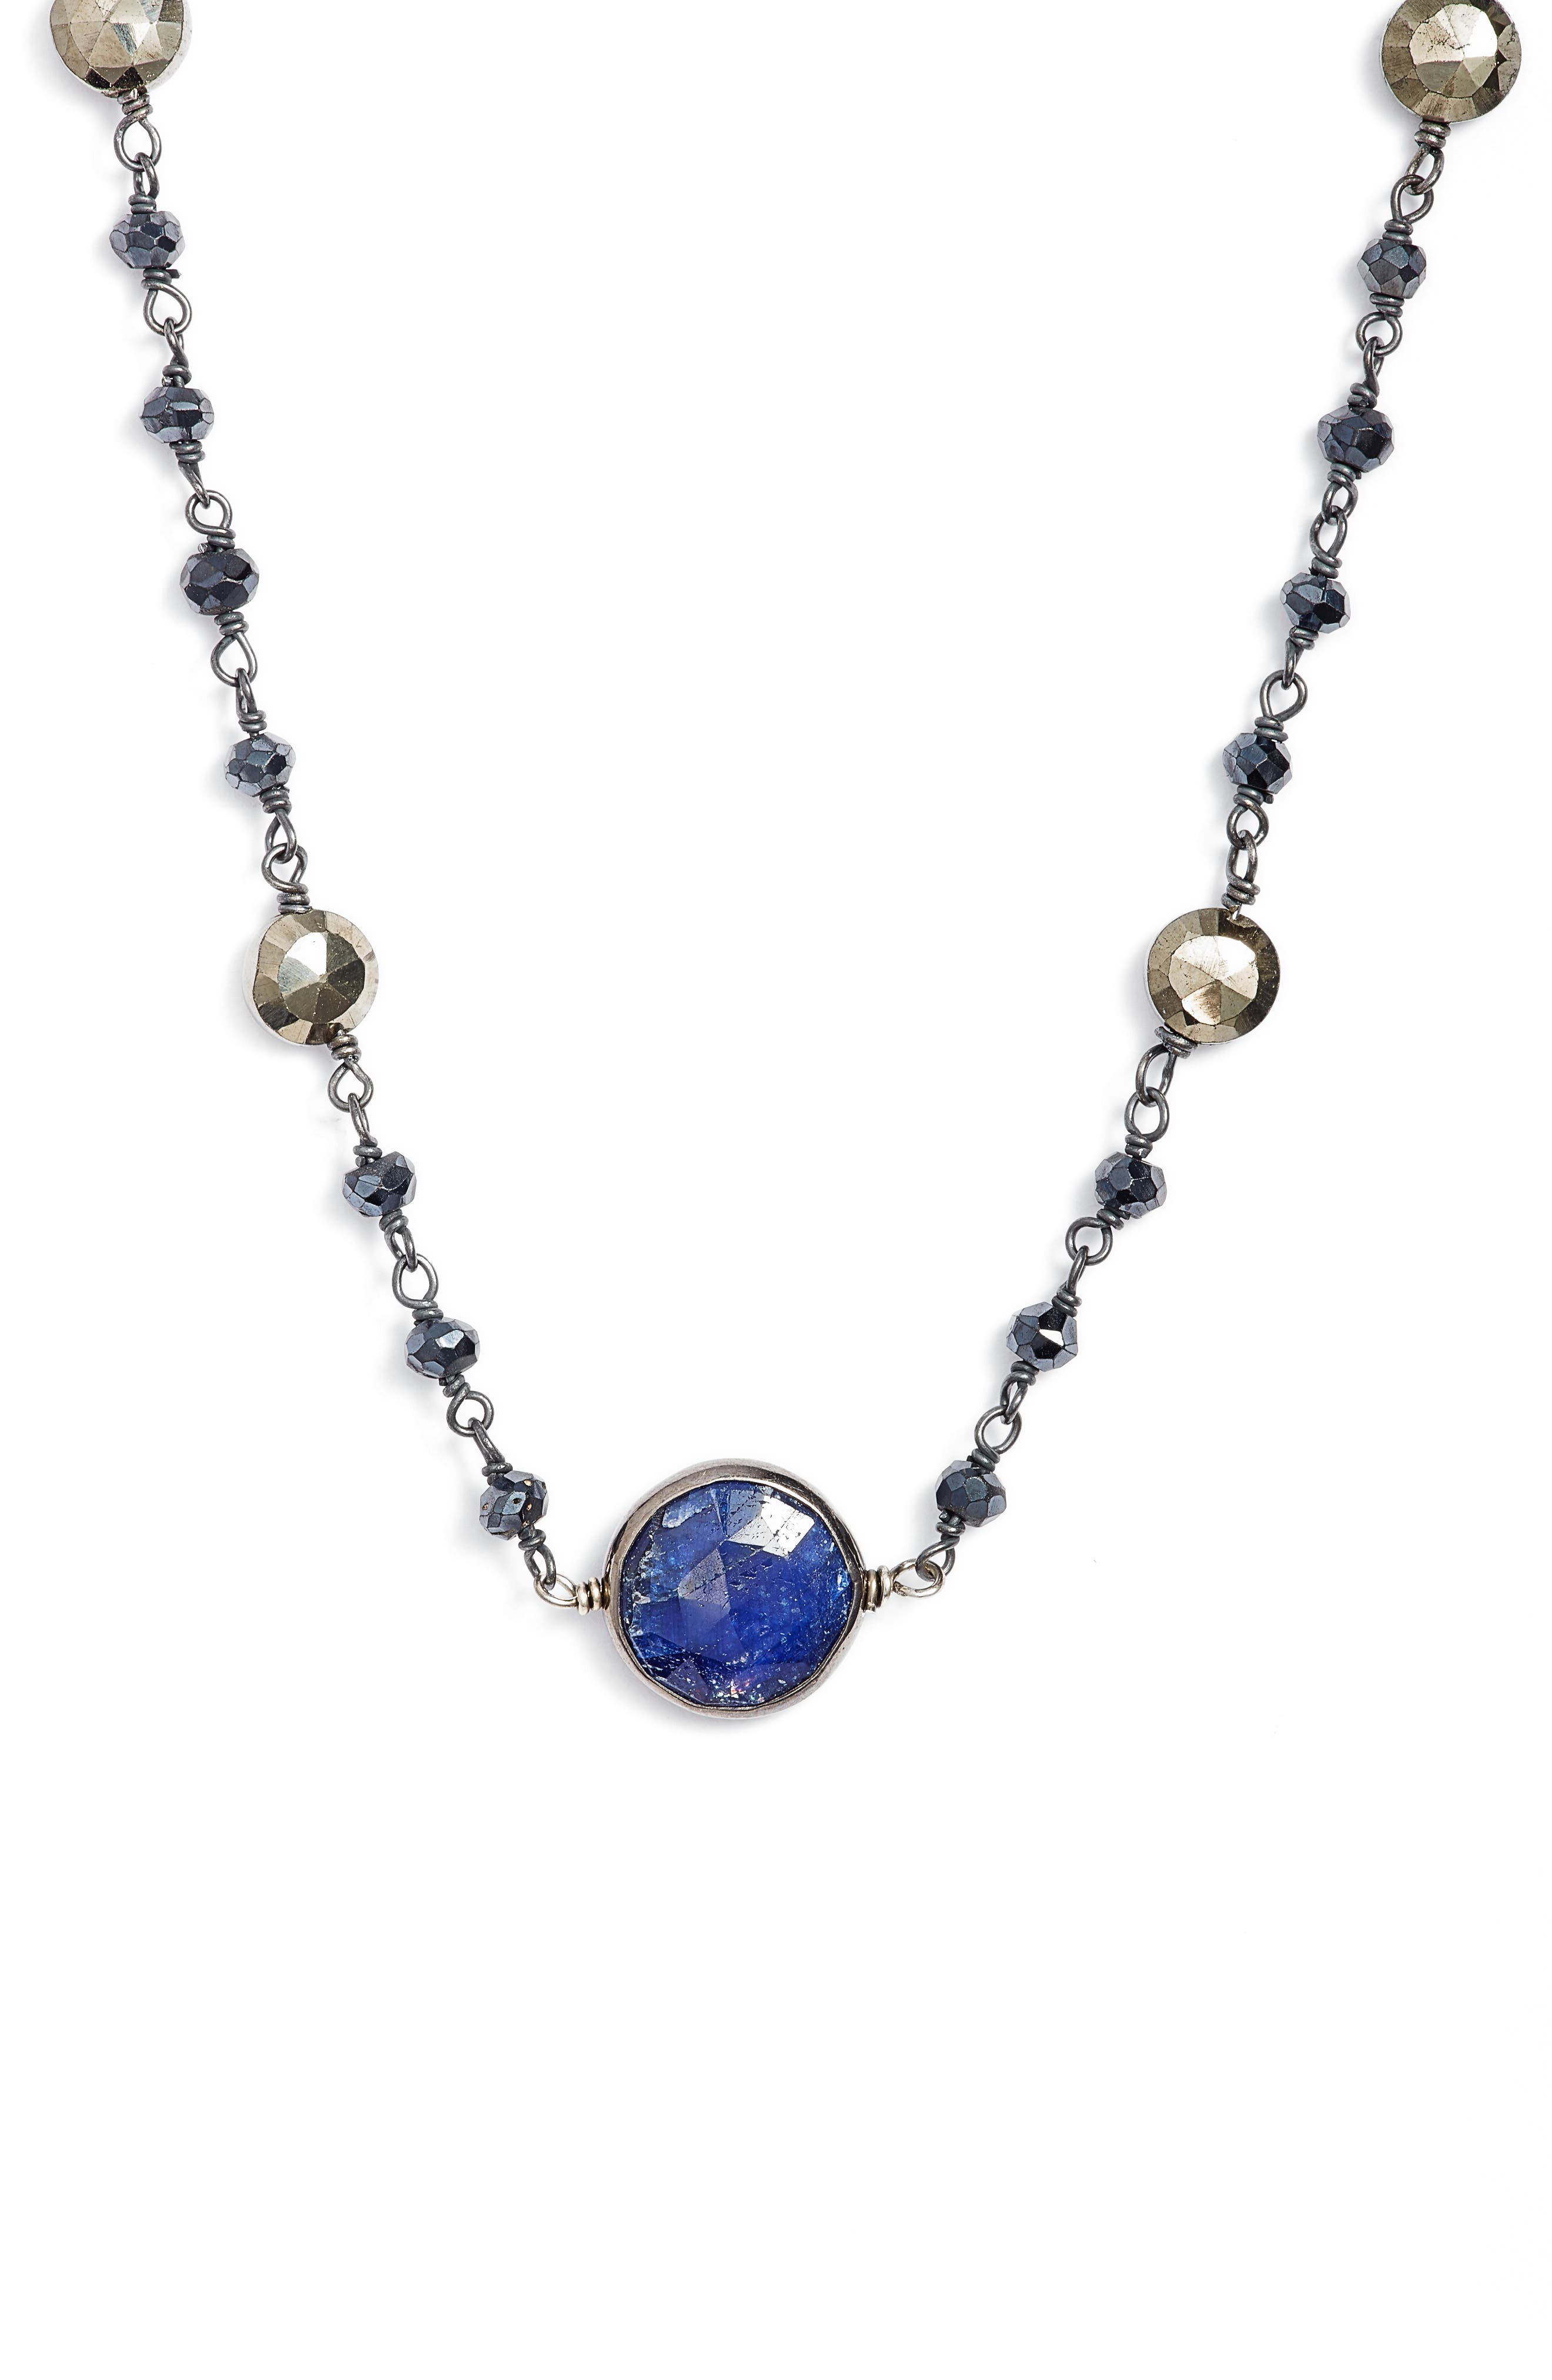 Semiprecious Stone Collar Necklace,                             Main thumbnail 1, color,                             MYSTIC BLACK SPINEL/ SAPPHIRE